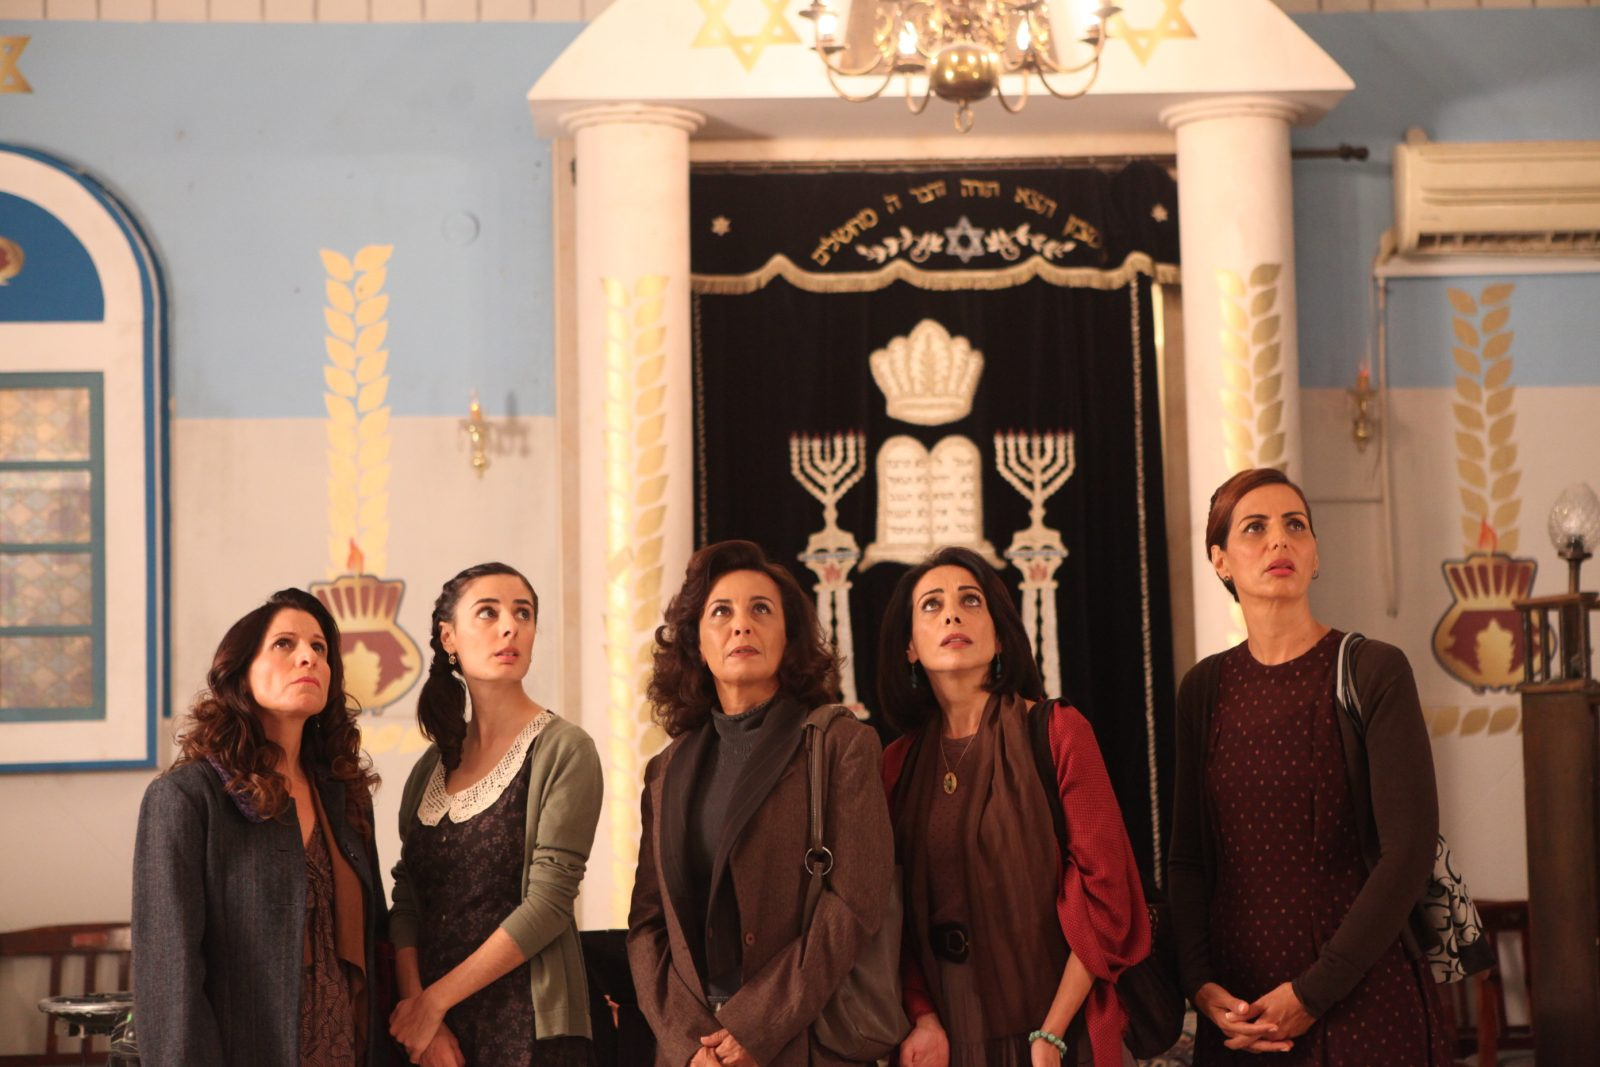 """The Women's Balcony,"" the highest grossing film in Israel in 2016, will be shown as part of the Buffalo International Jewish Film Festival."